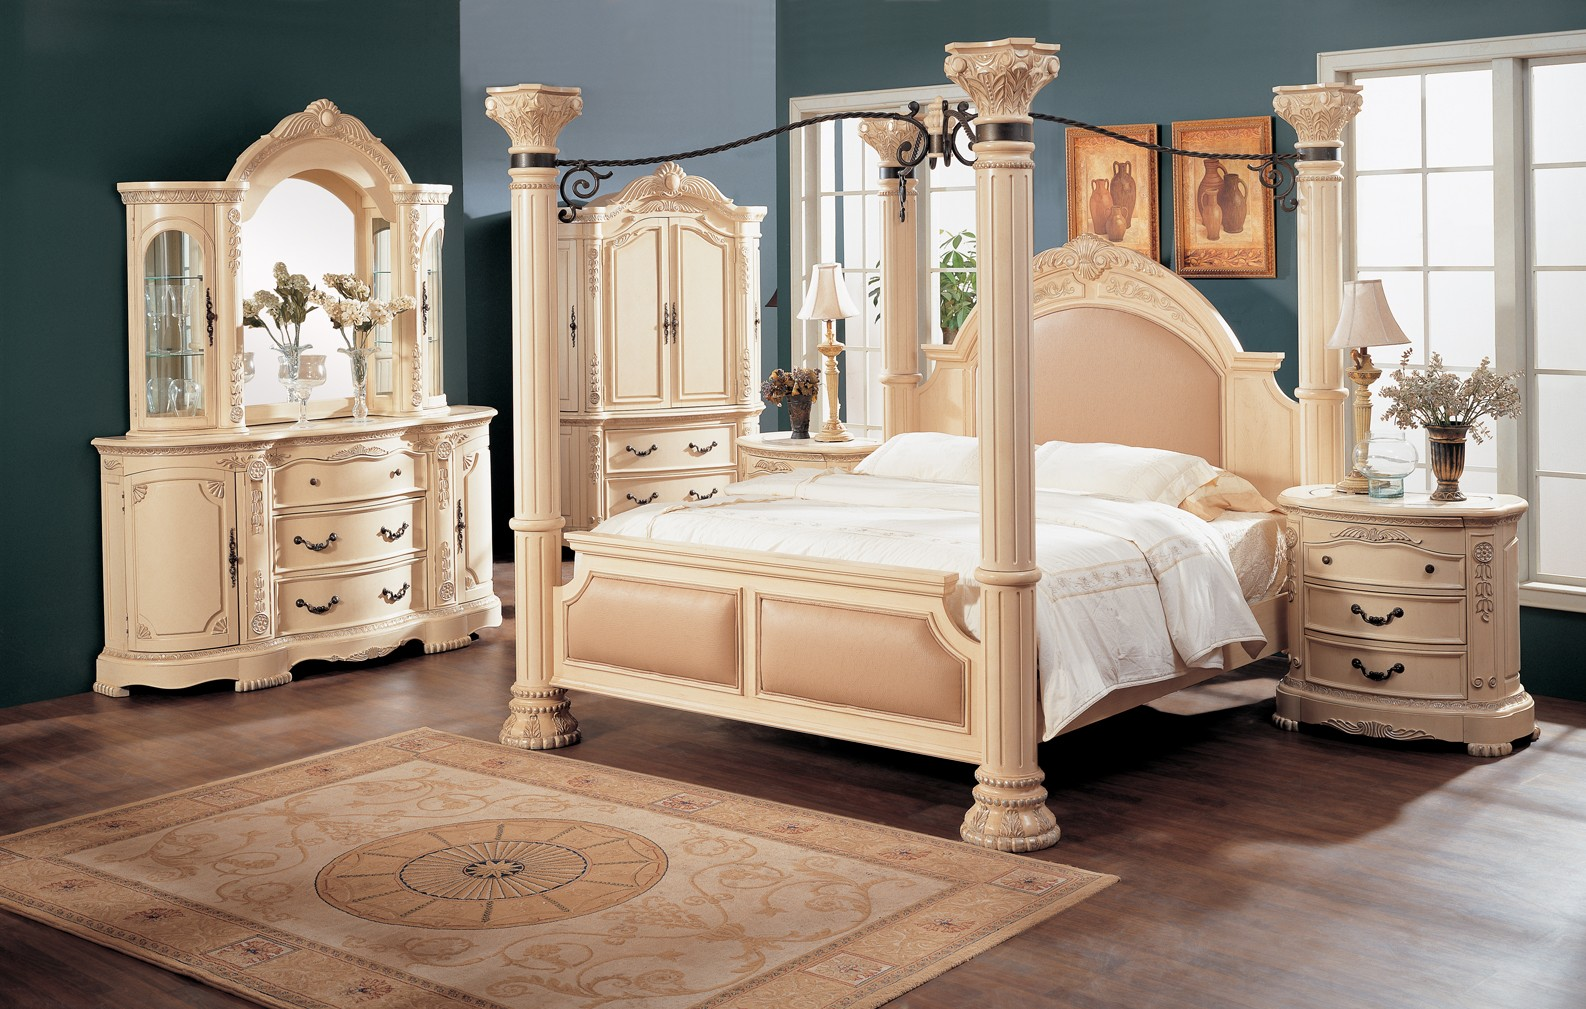 traditional bedroom design ideas 25 stunning traditional bedroom designs 17555